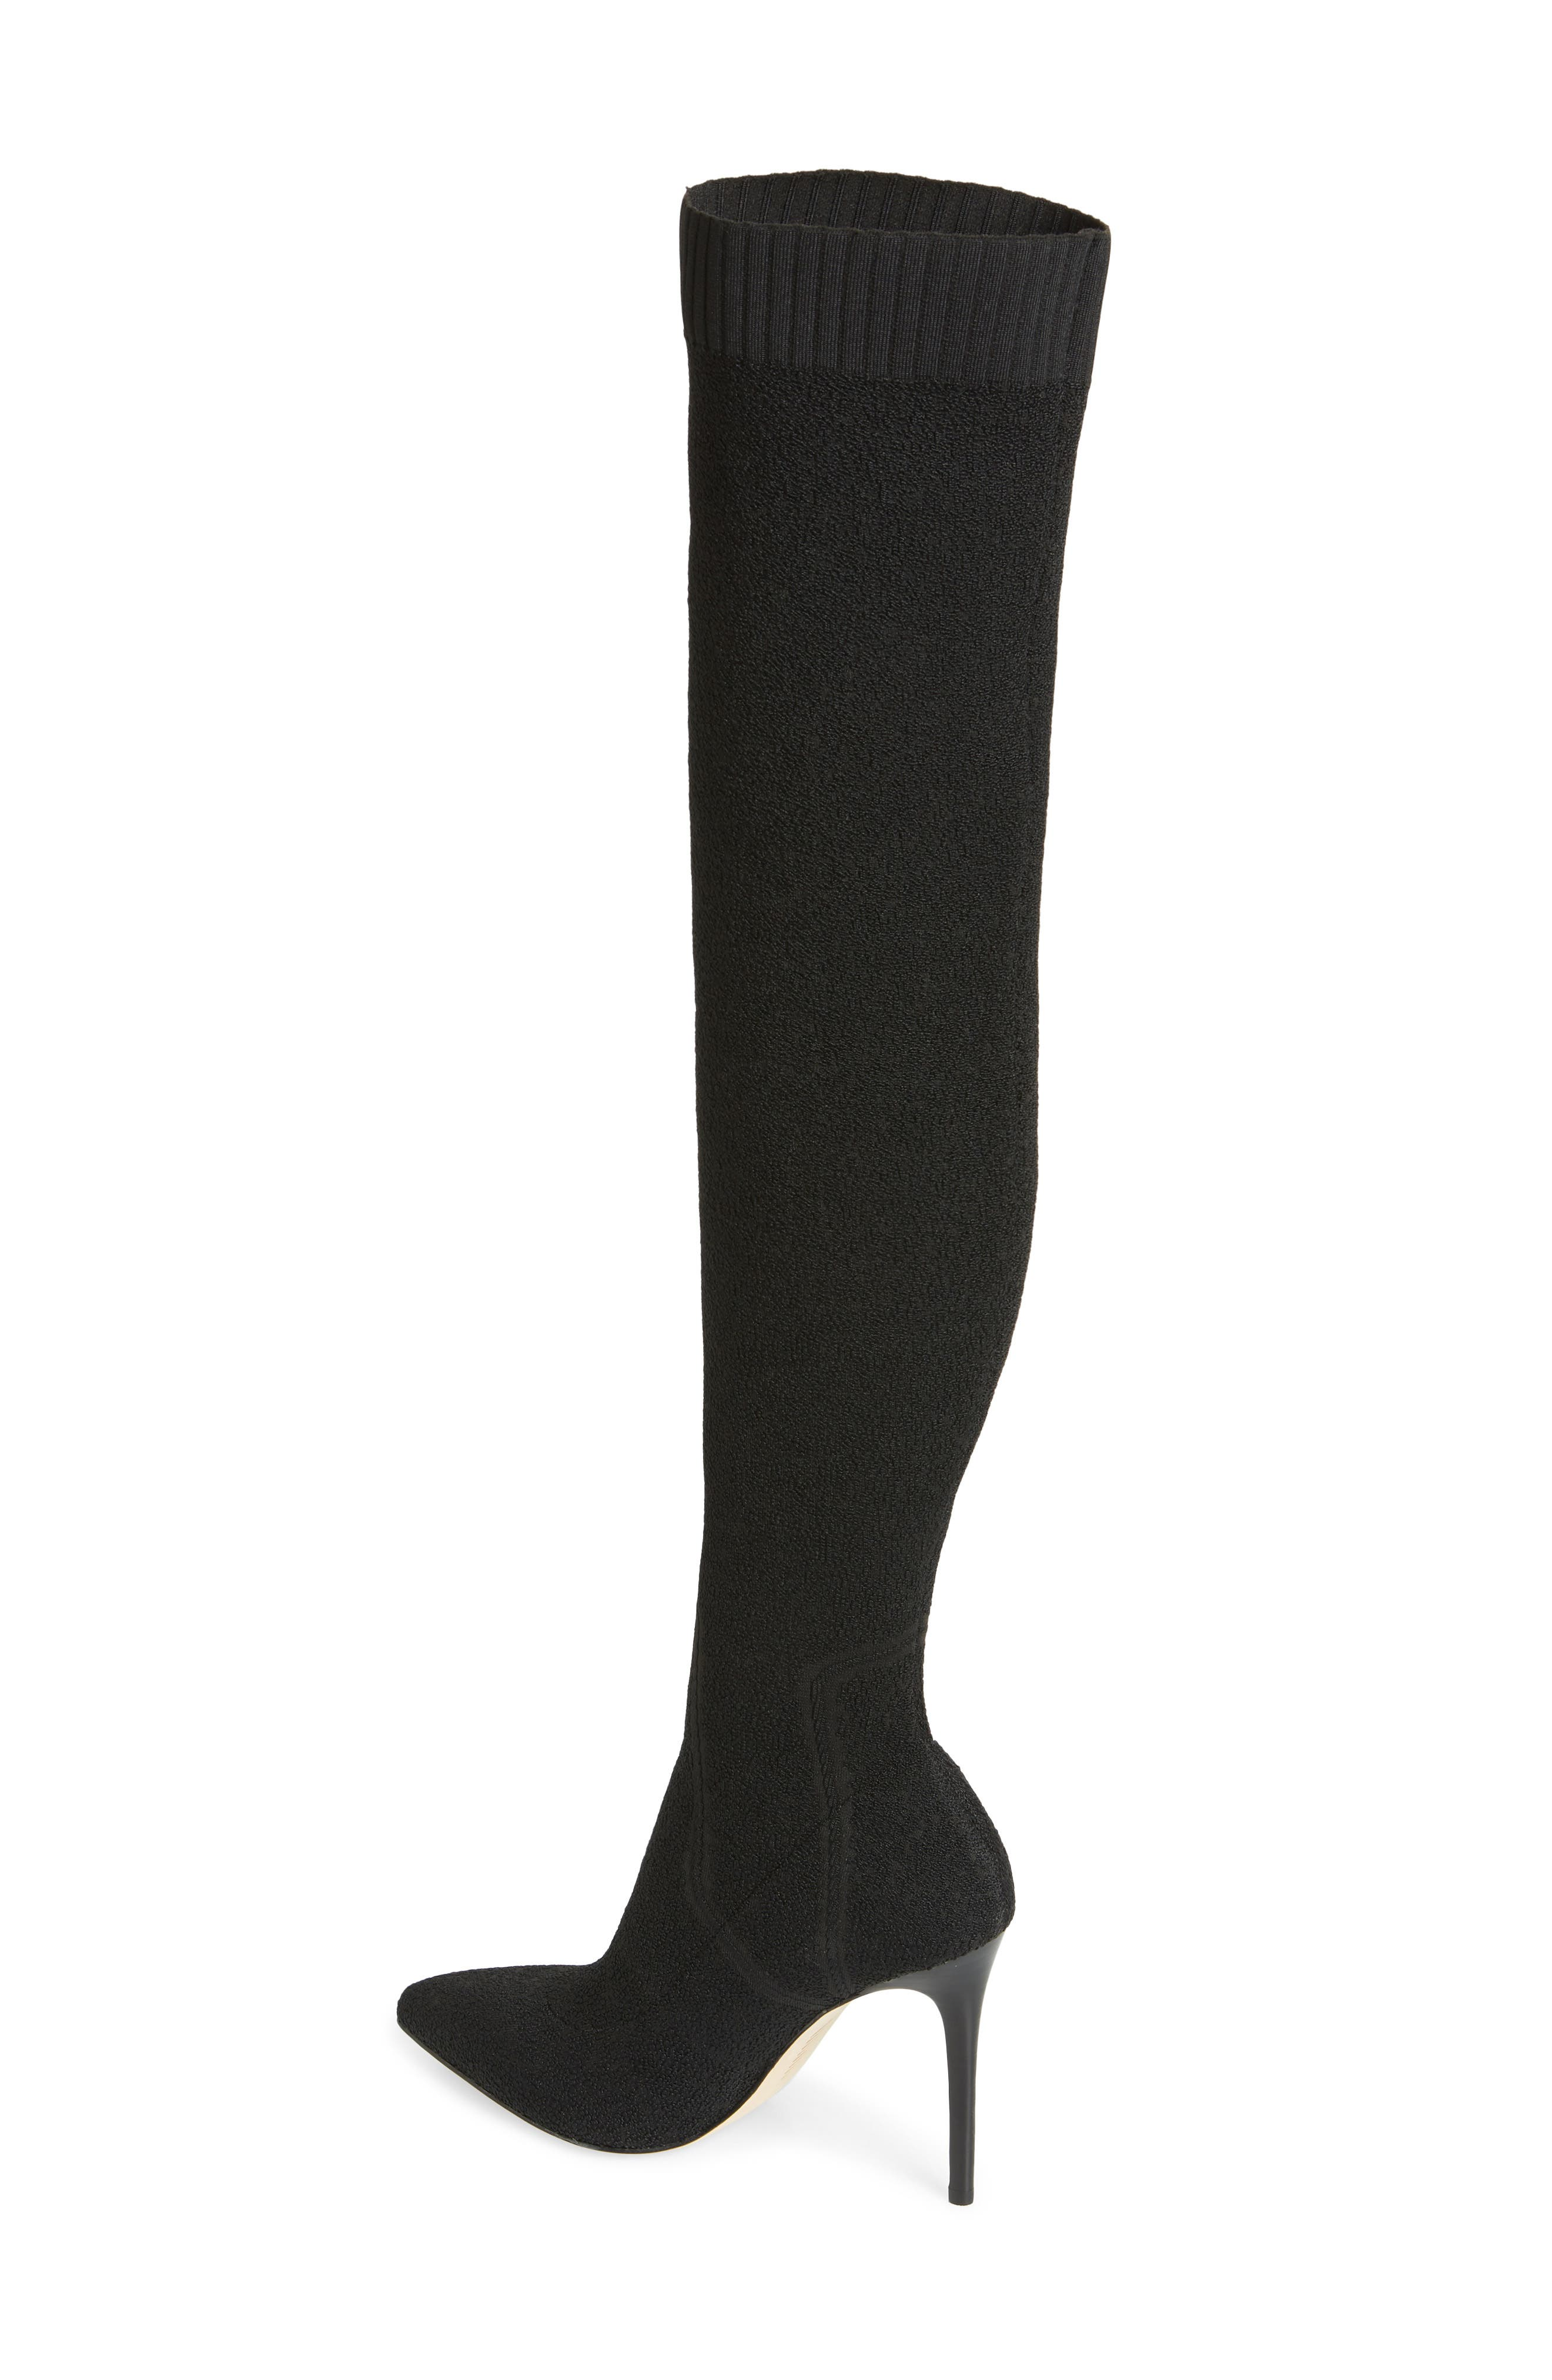 PAIGE, Jessamine Over the Knee Boot, Alternate thumbnail 2, color, 001